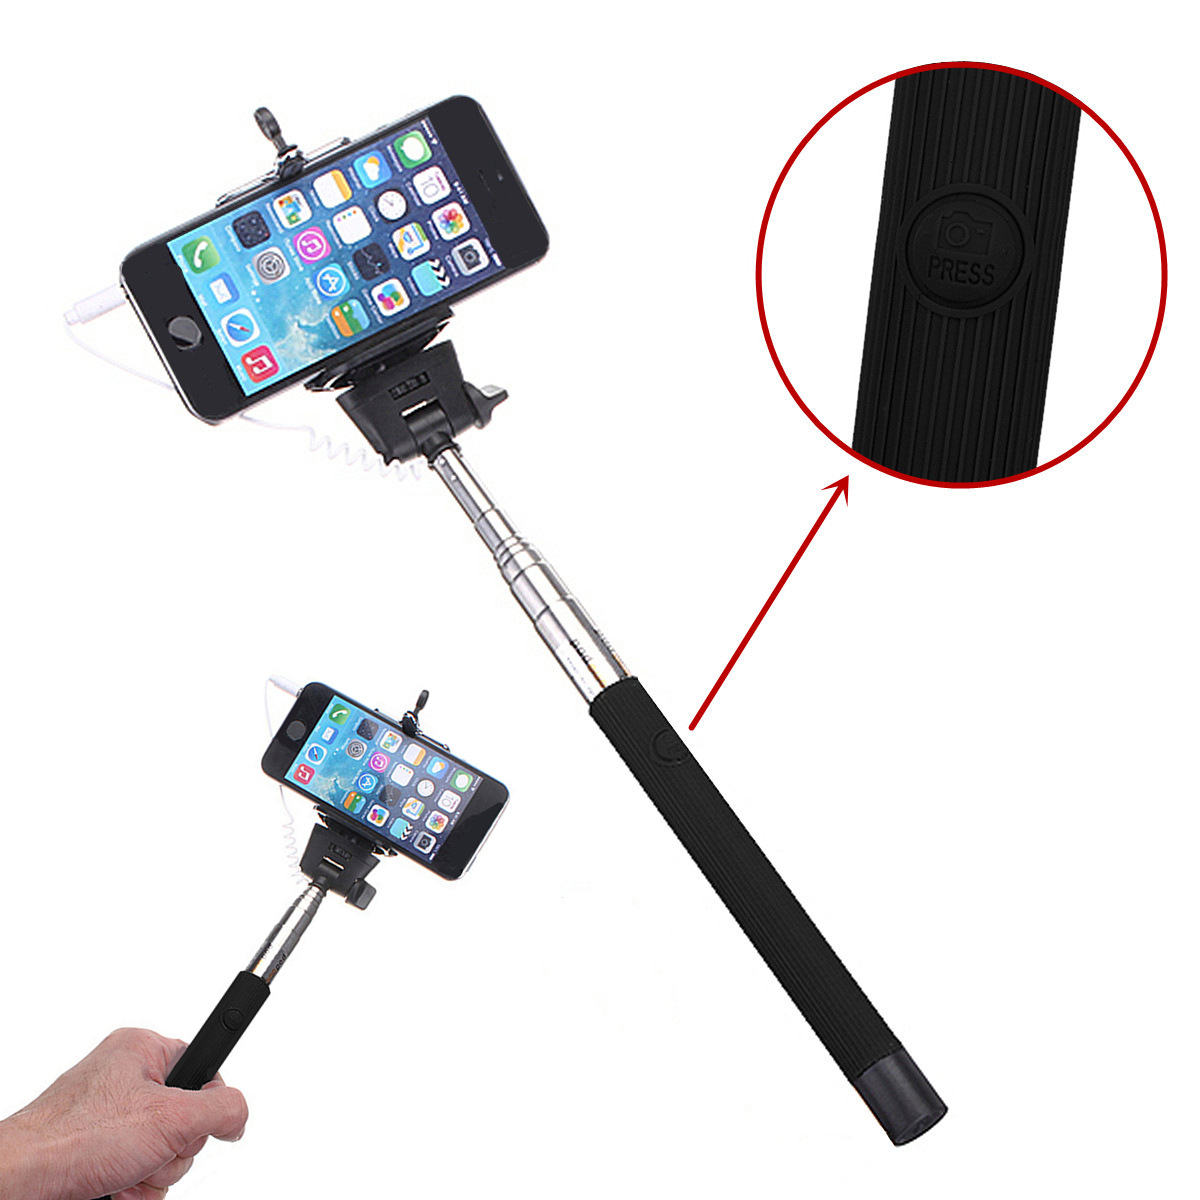 extensible remote monopod selfie stick for iphone samsung huawei sony lg nexus. Black Bedroom Furniture Sets. Home Design Ideas